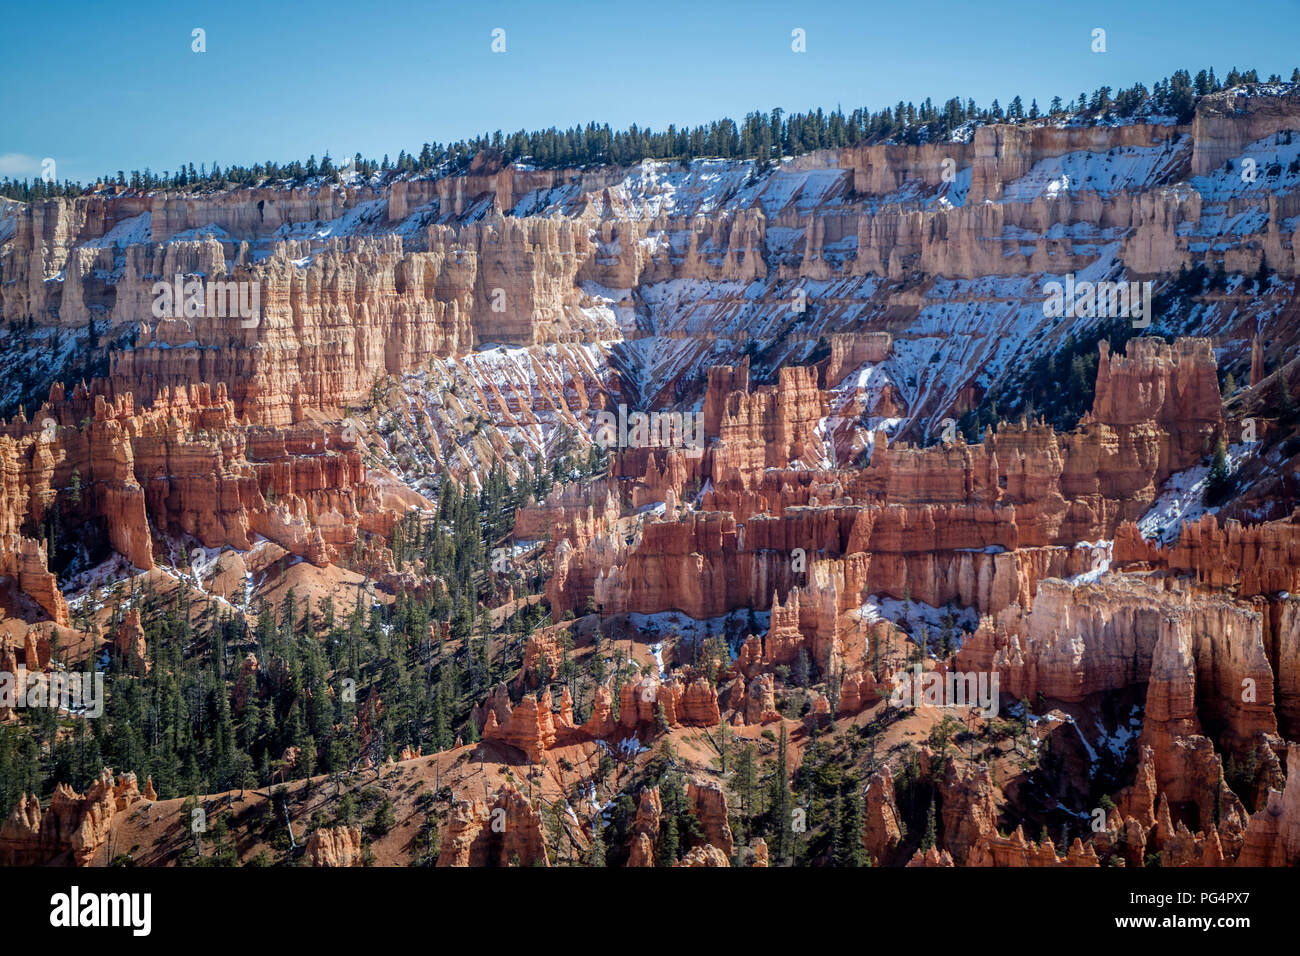 Les roches rouges de Hoodoos Bryce Point à Bryce Canyon National Park, Utah Photo Stock